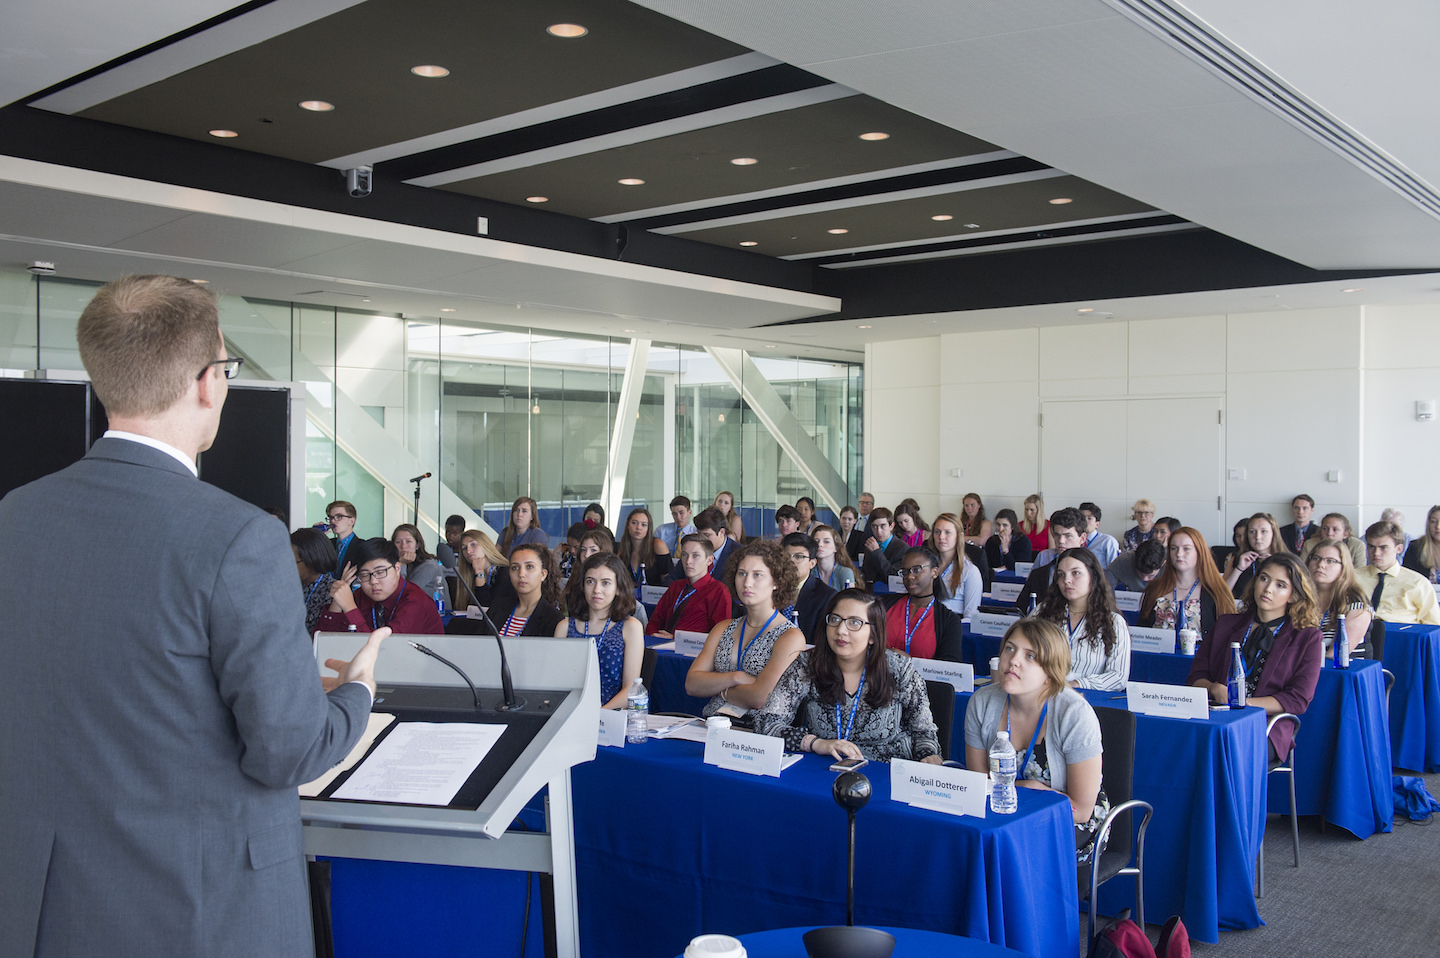 The+Free+Spirit+group%2C+consisting+of+one+student+from+each+state+and+D.C.%2C+listens+to+advice+from+2017+Pulitzer+Prize+winner+David+Fahrenthold.+Photo+courtesy+Newseum+Institute.